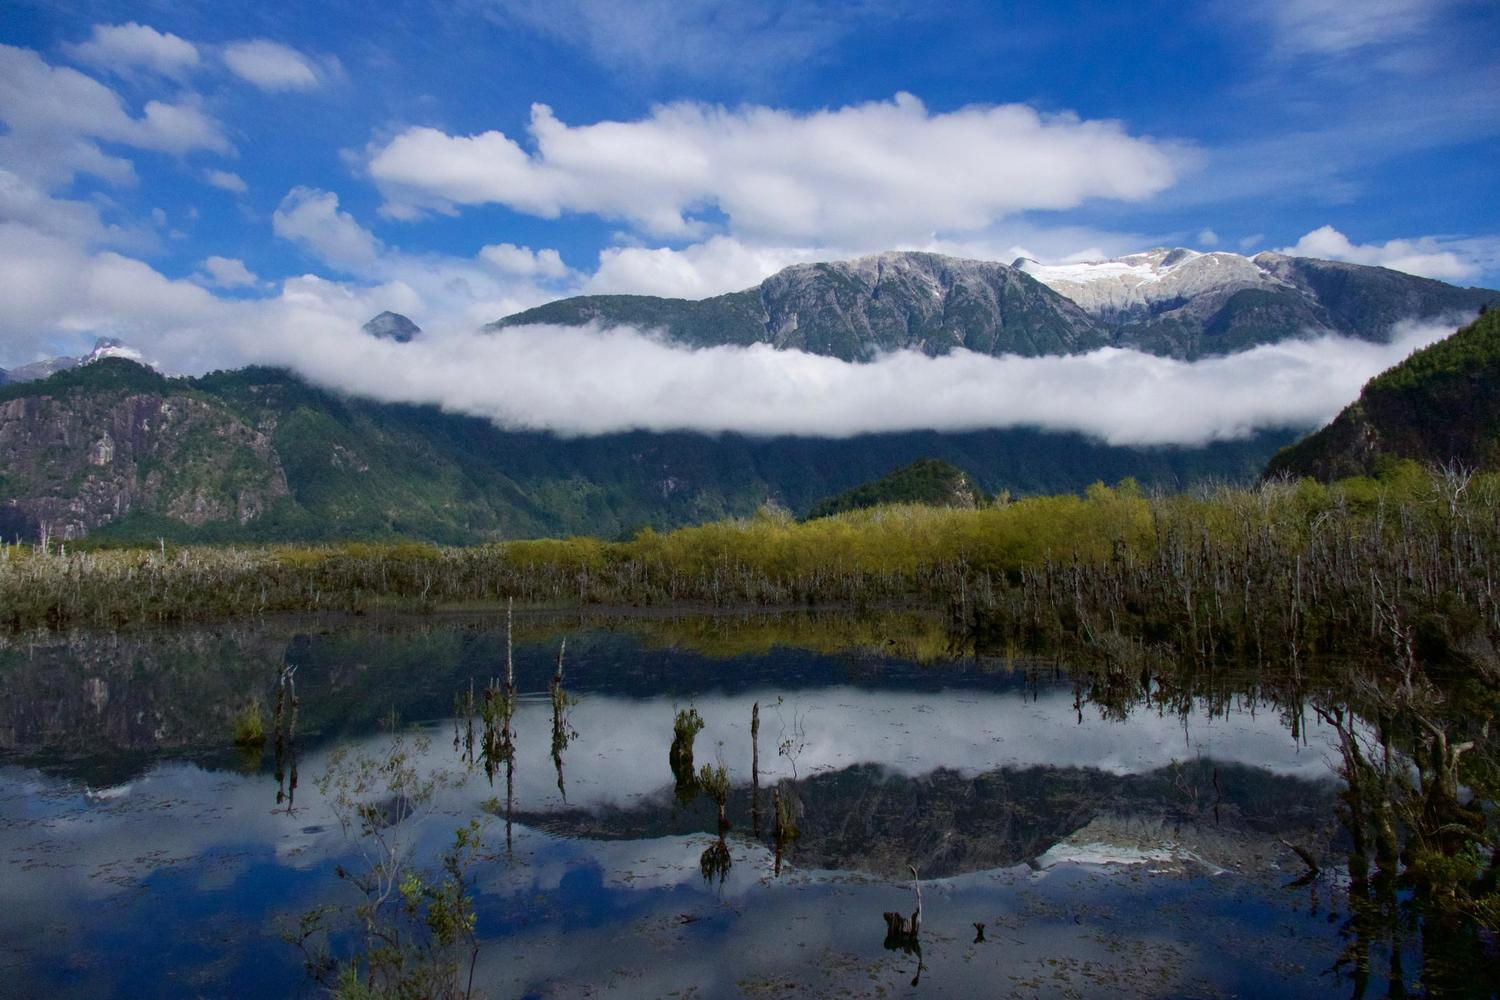 Reflections by the Carretera Austral